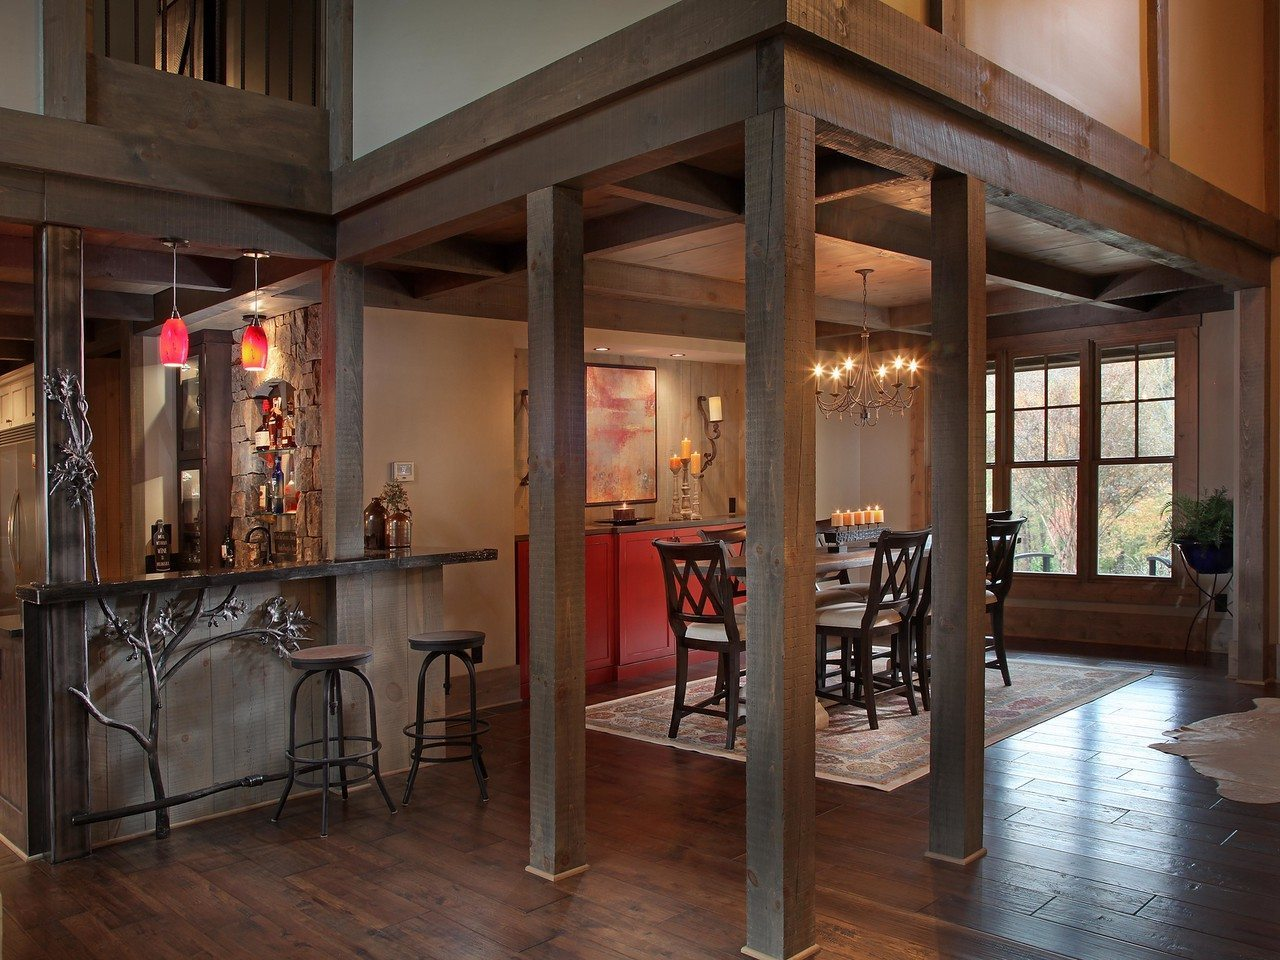 shady-oaks-bar-and-dining-room